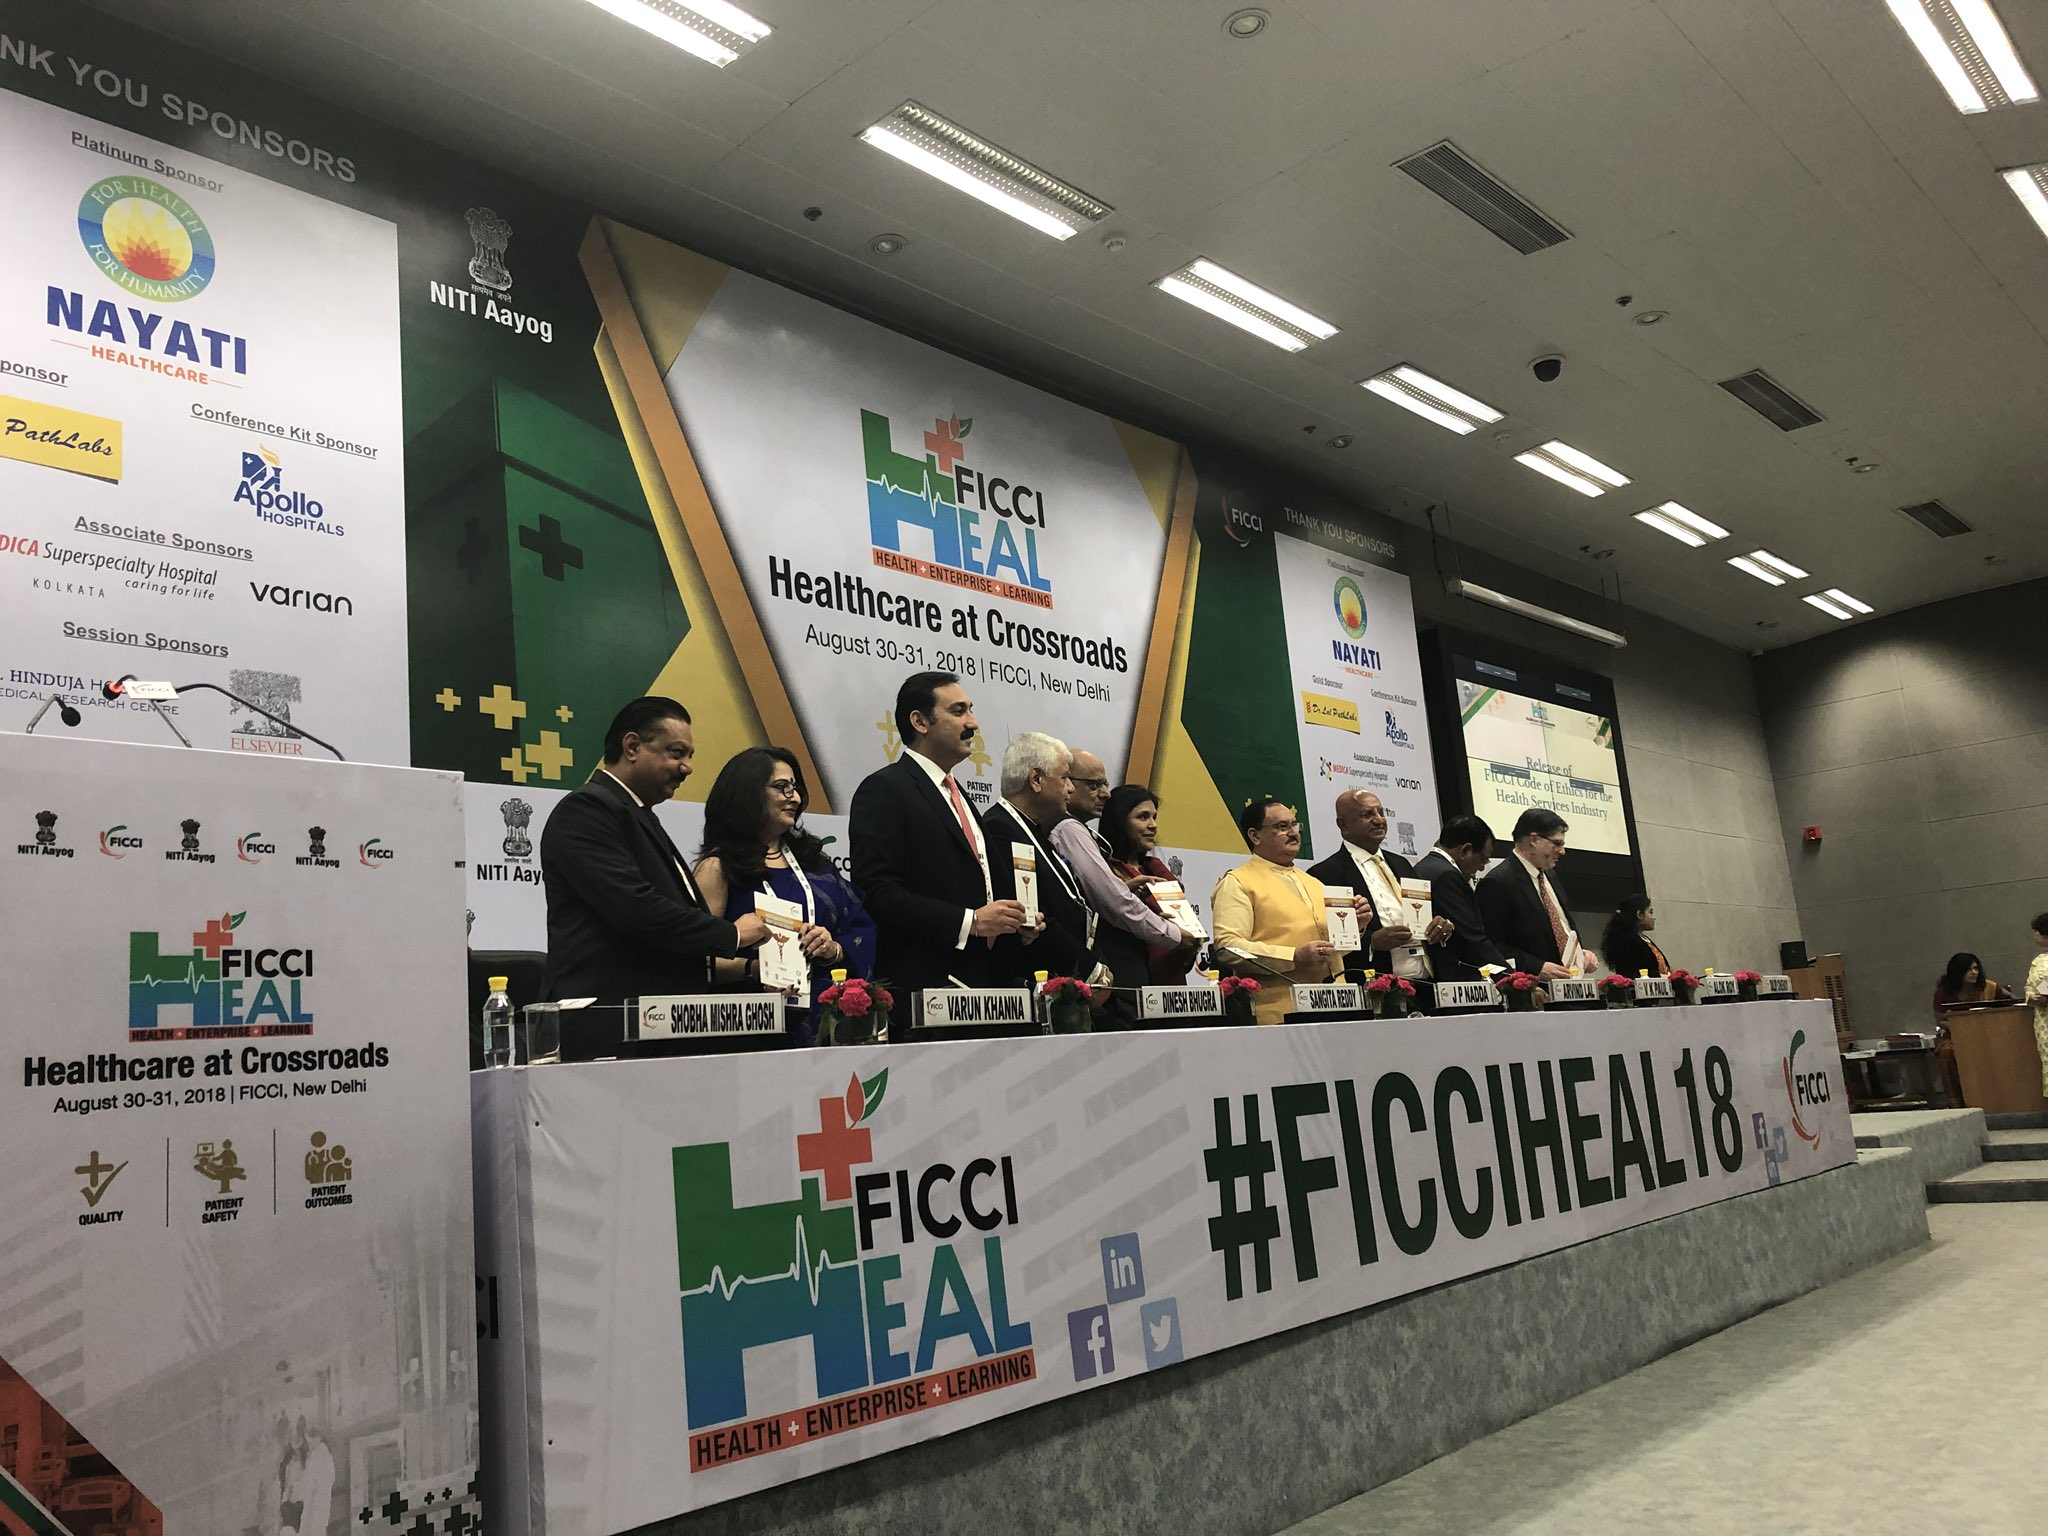 Healthcare at Crossroads: FICCI Heal 2018 addresses key issues in Indian healthcare